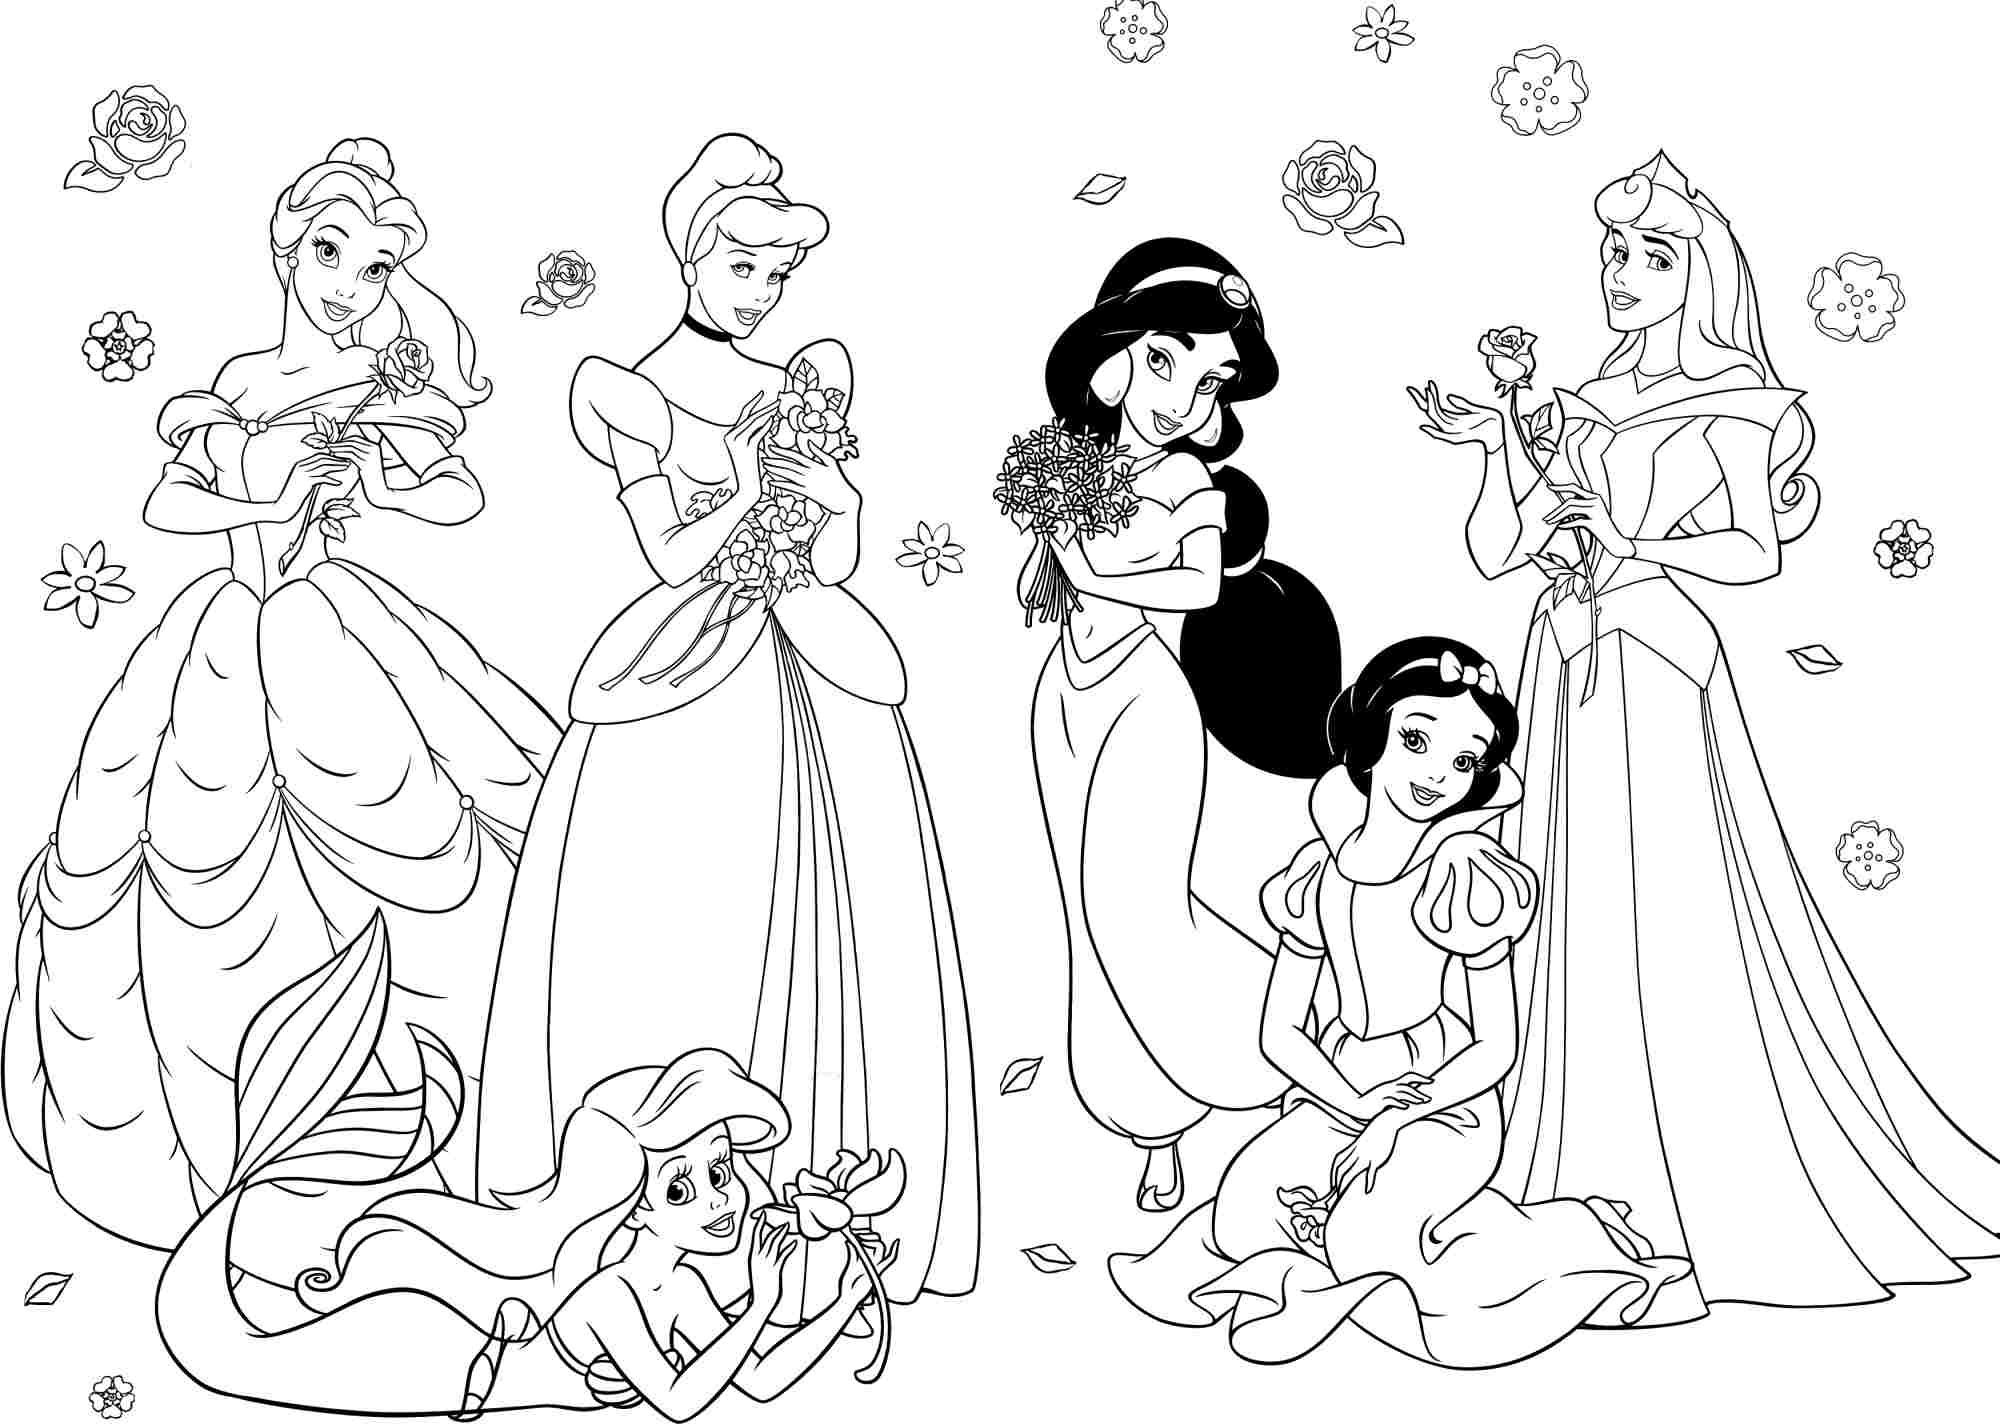 2000x1425 Princess Coloring Pages For Girls Free Large Images Crafting